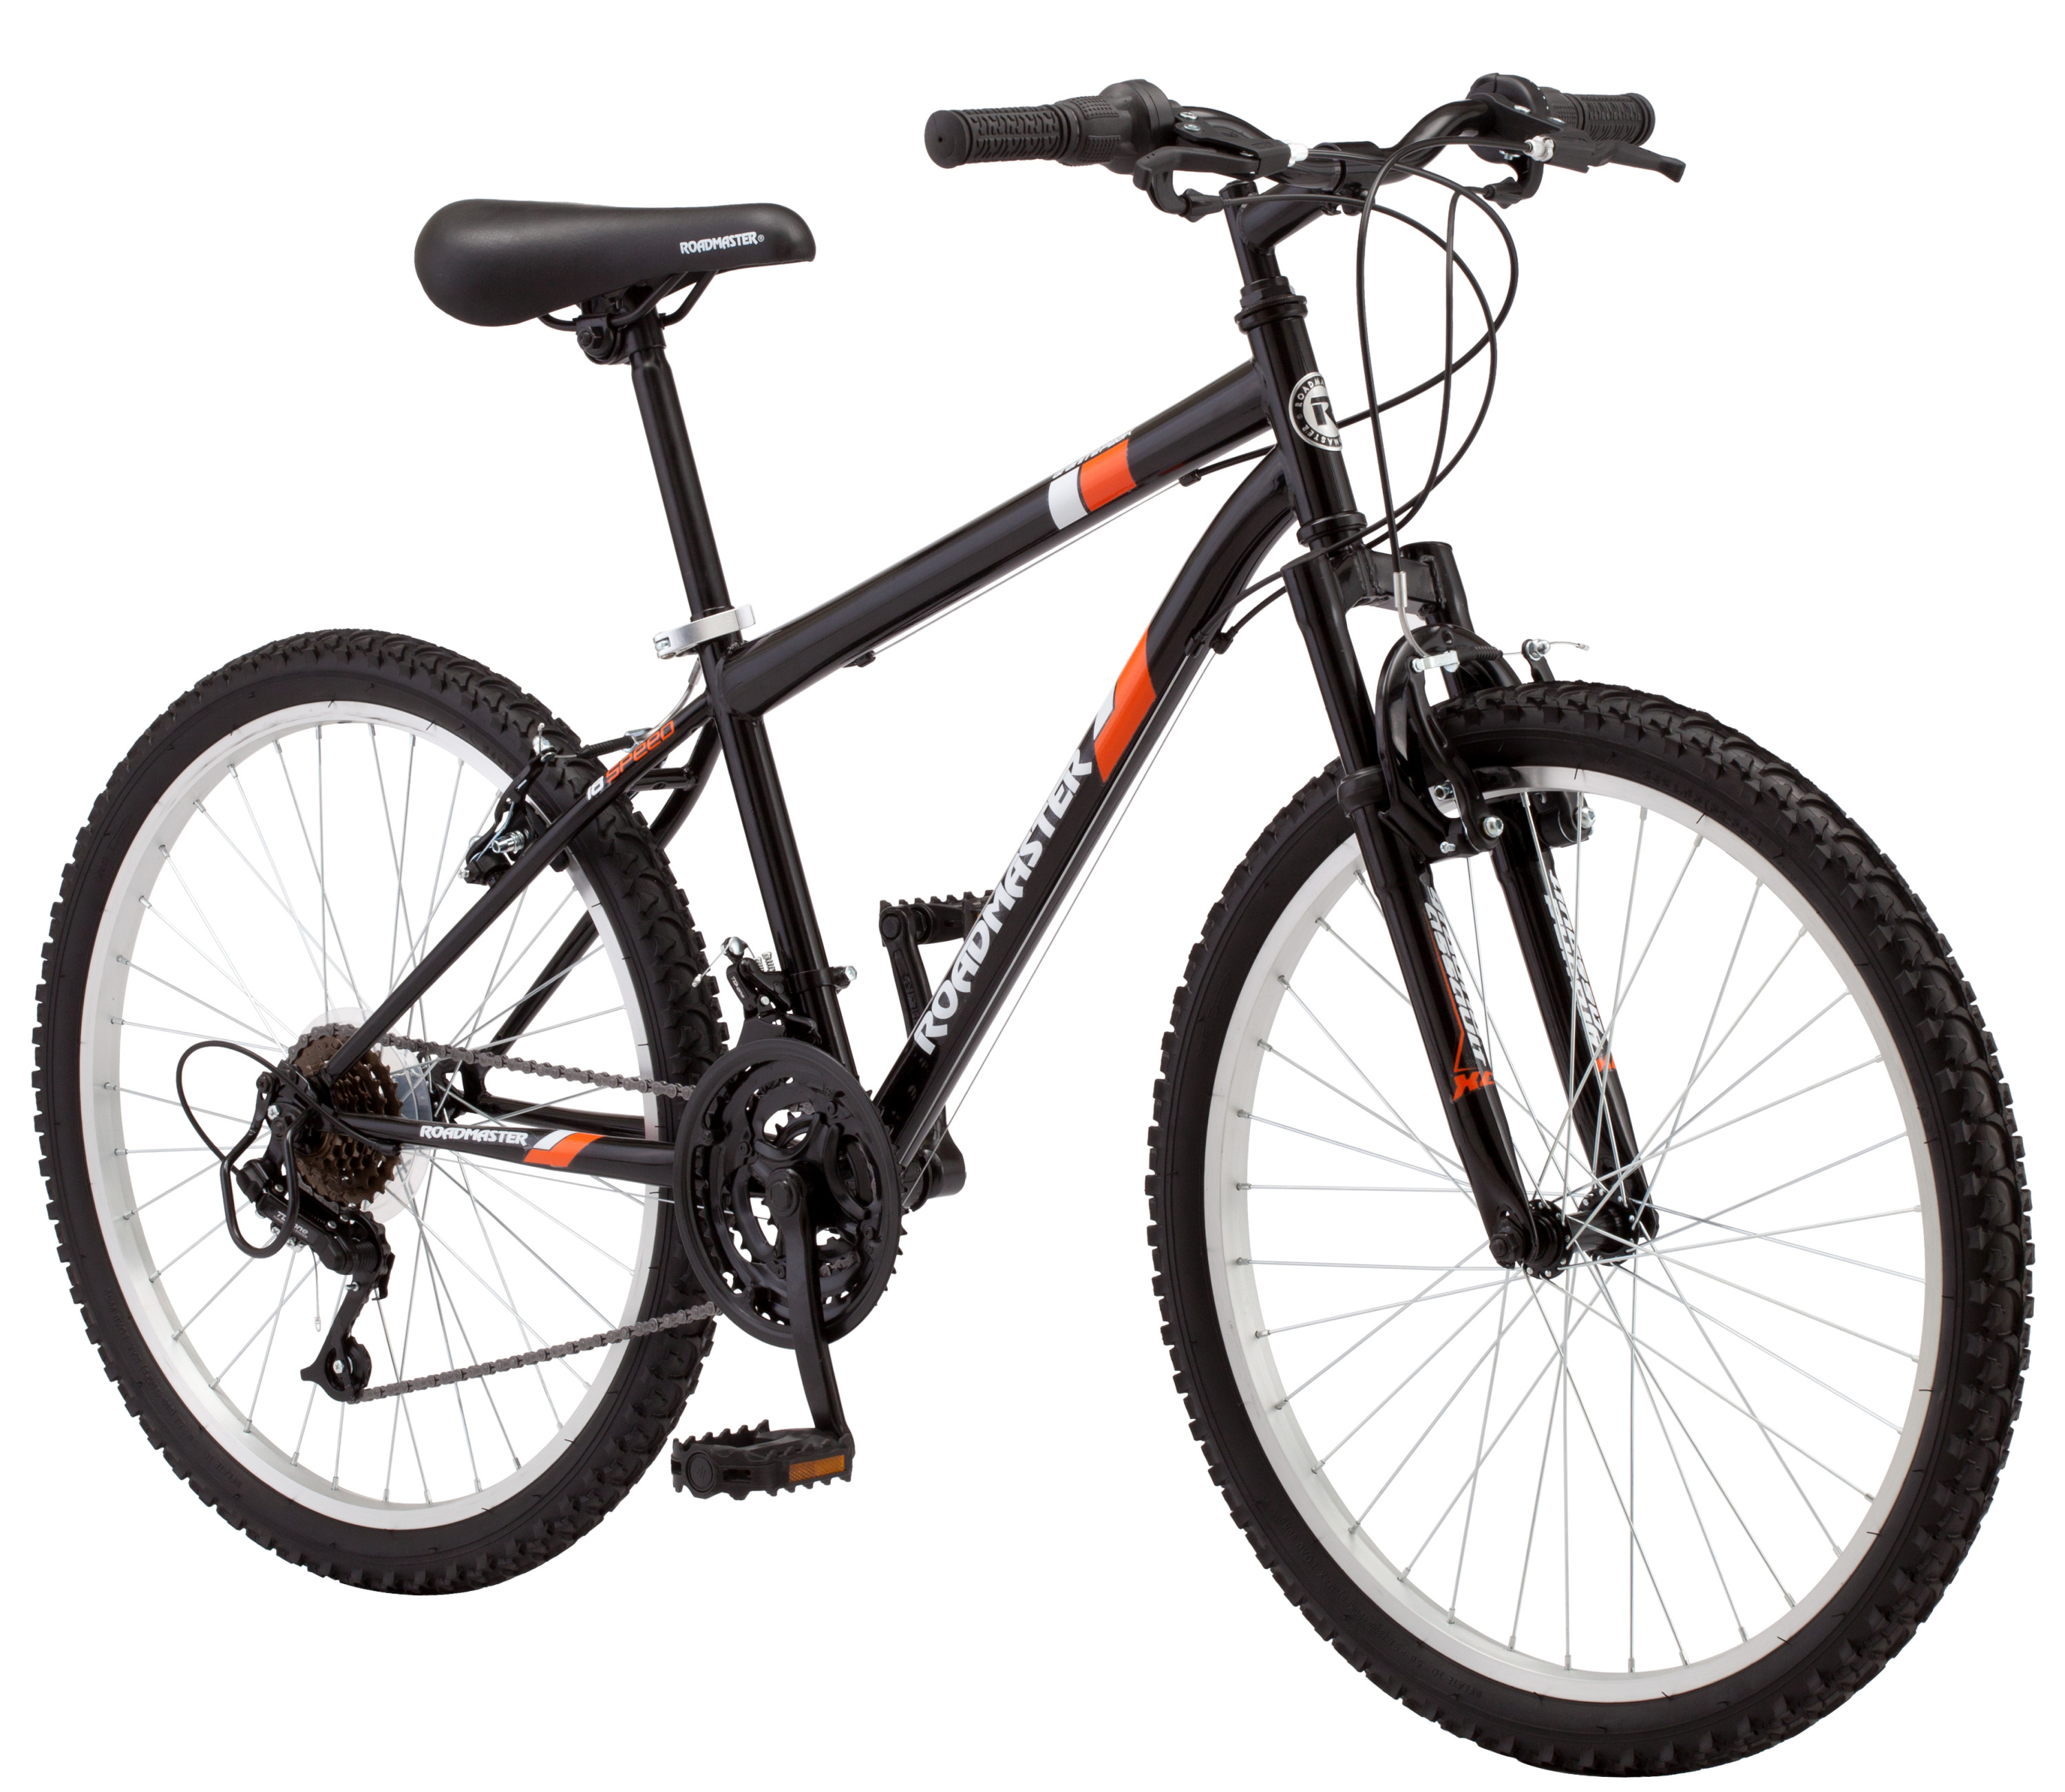 Roadmaster 24″ Granite Peak Boys Mountain Bike, Black